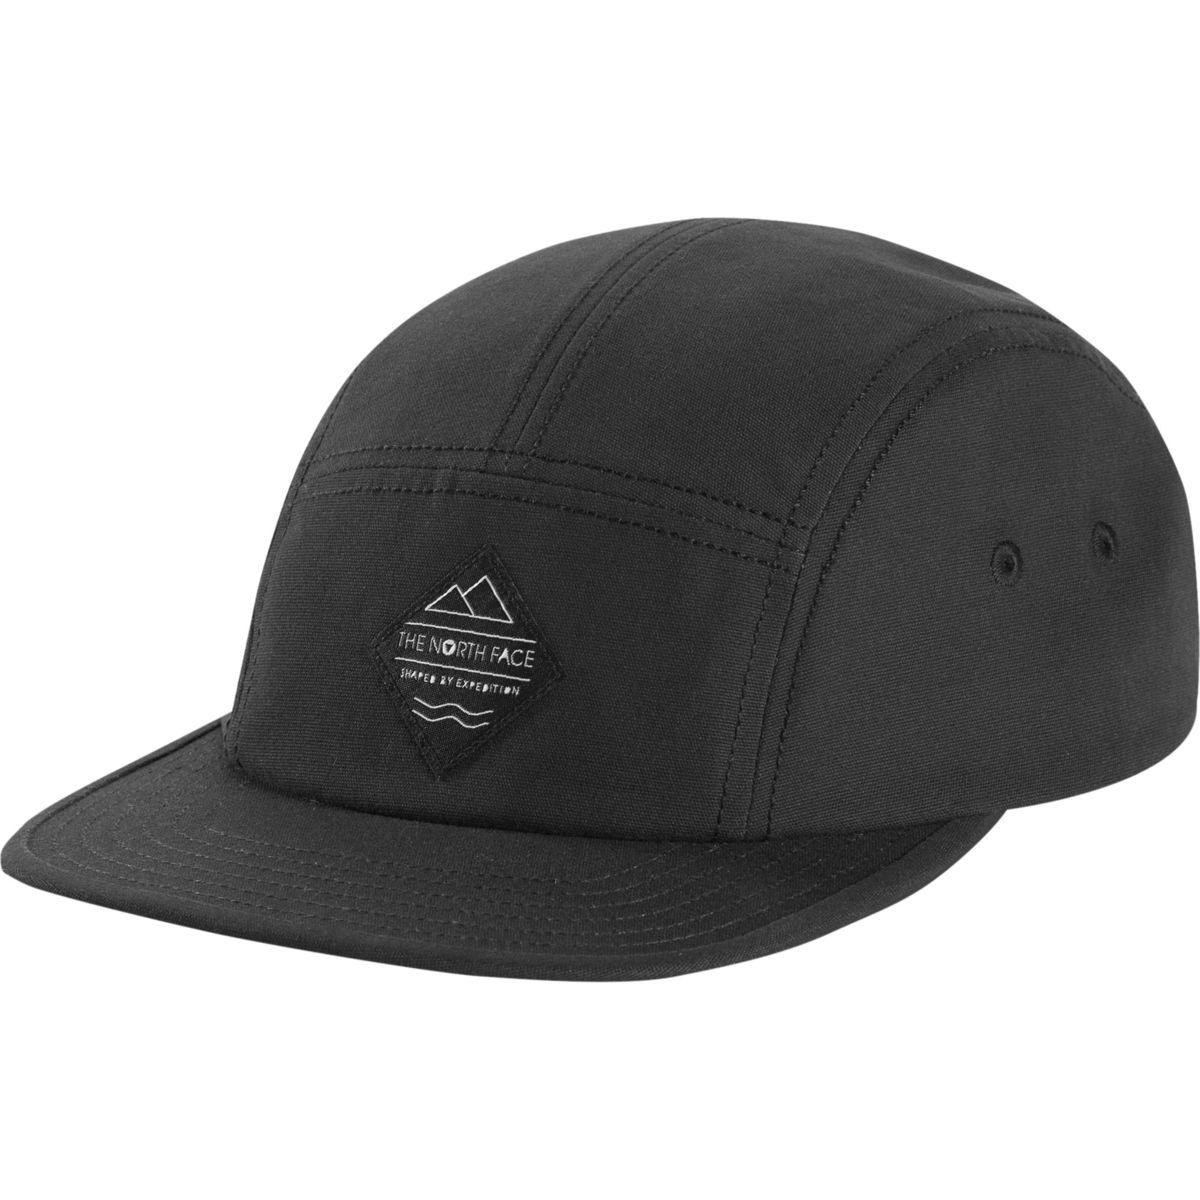 Lyst - The North Face Five Panel Ball Cap in Black for Men ca29e8f58a9